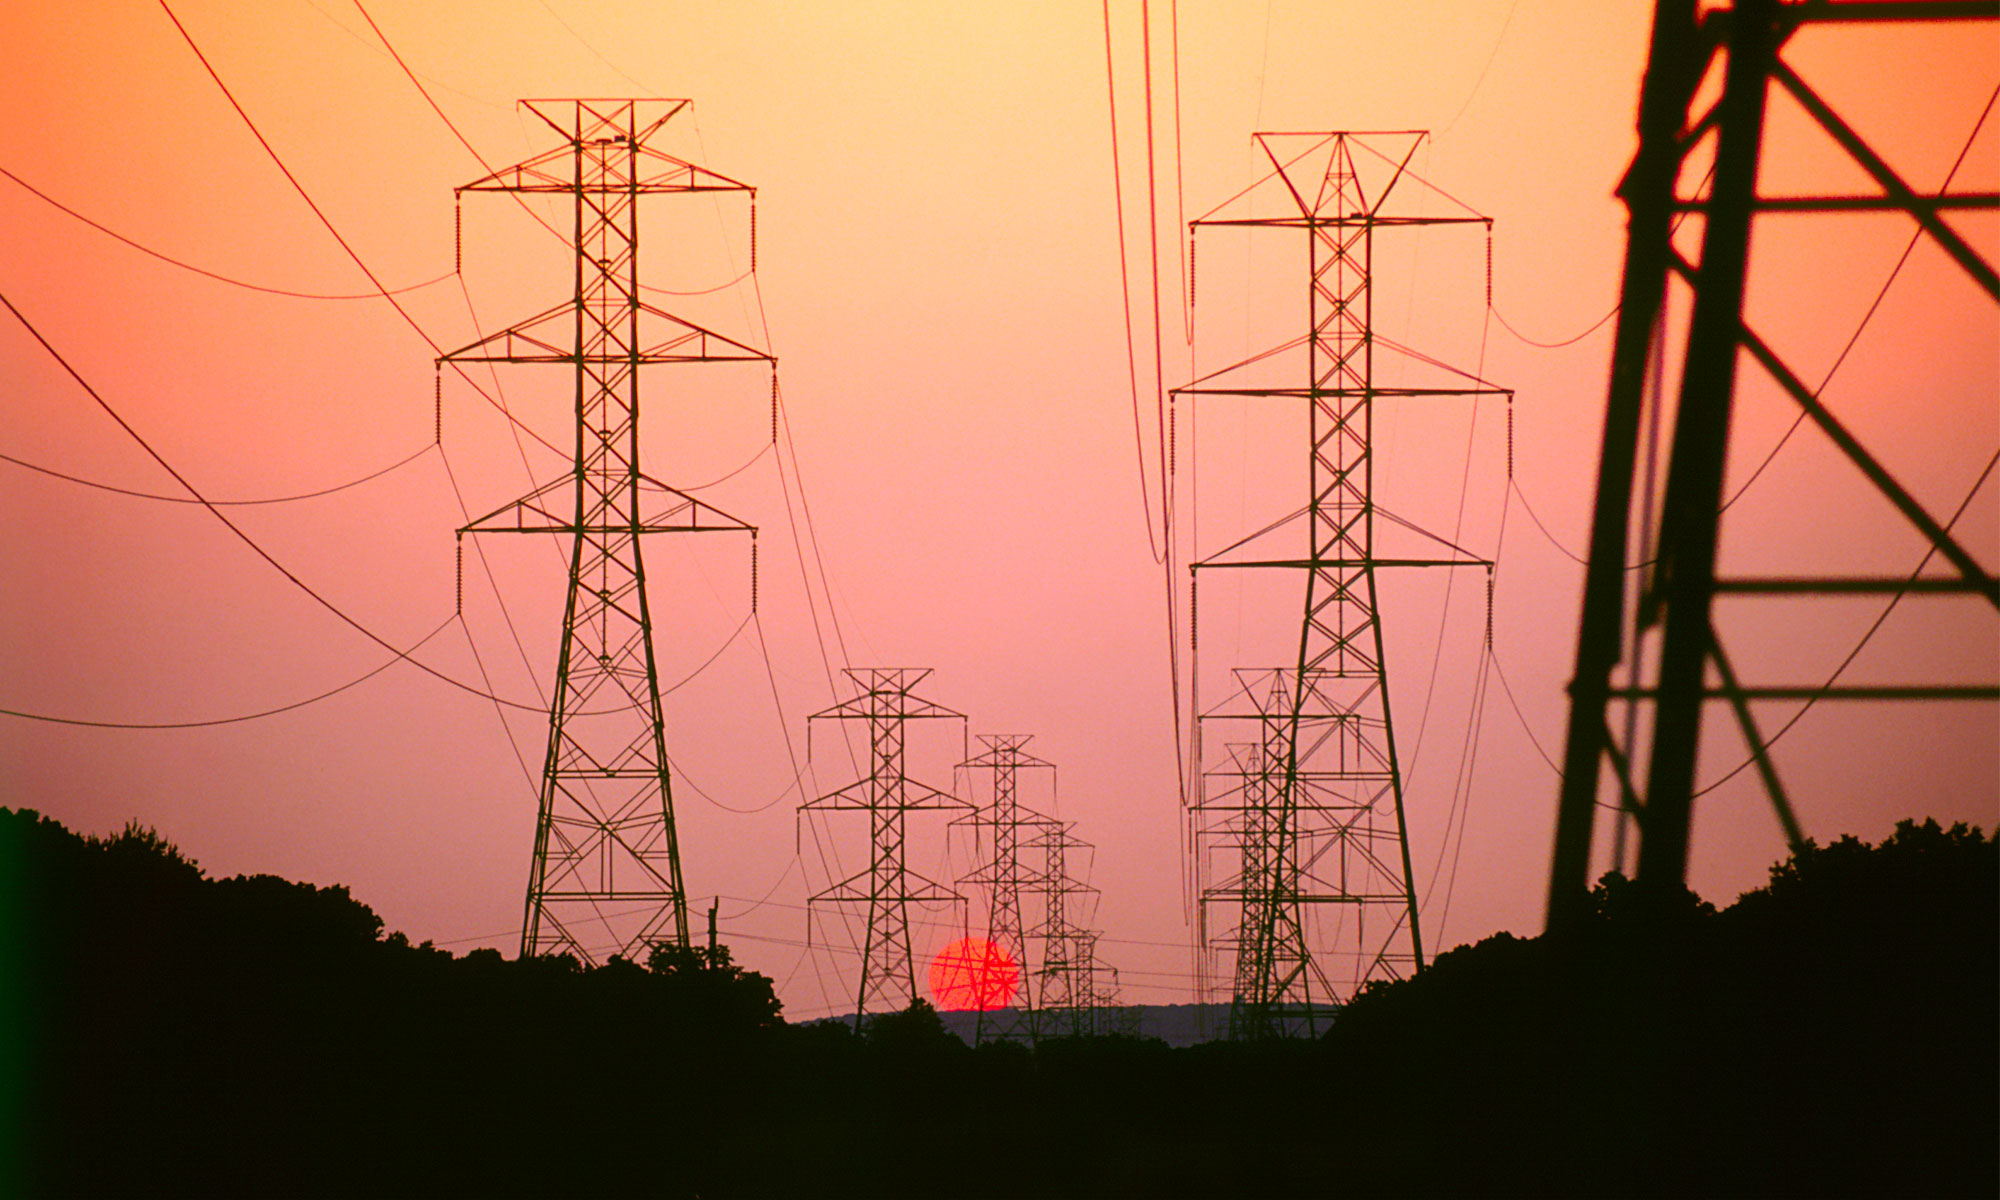 California Needs More Renewables and Storage to Prevent Future Power Outages